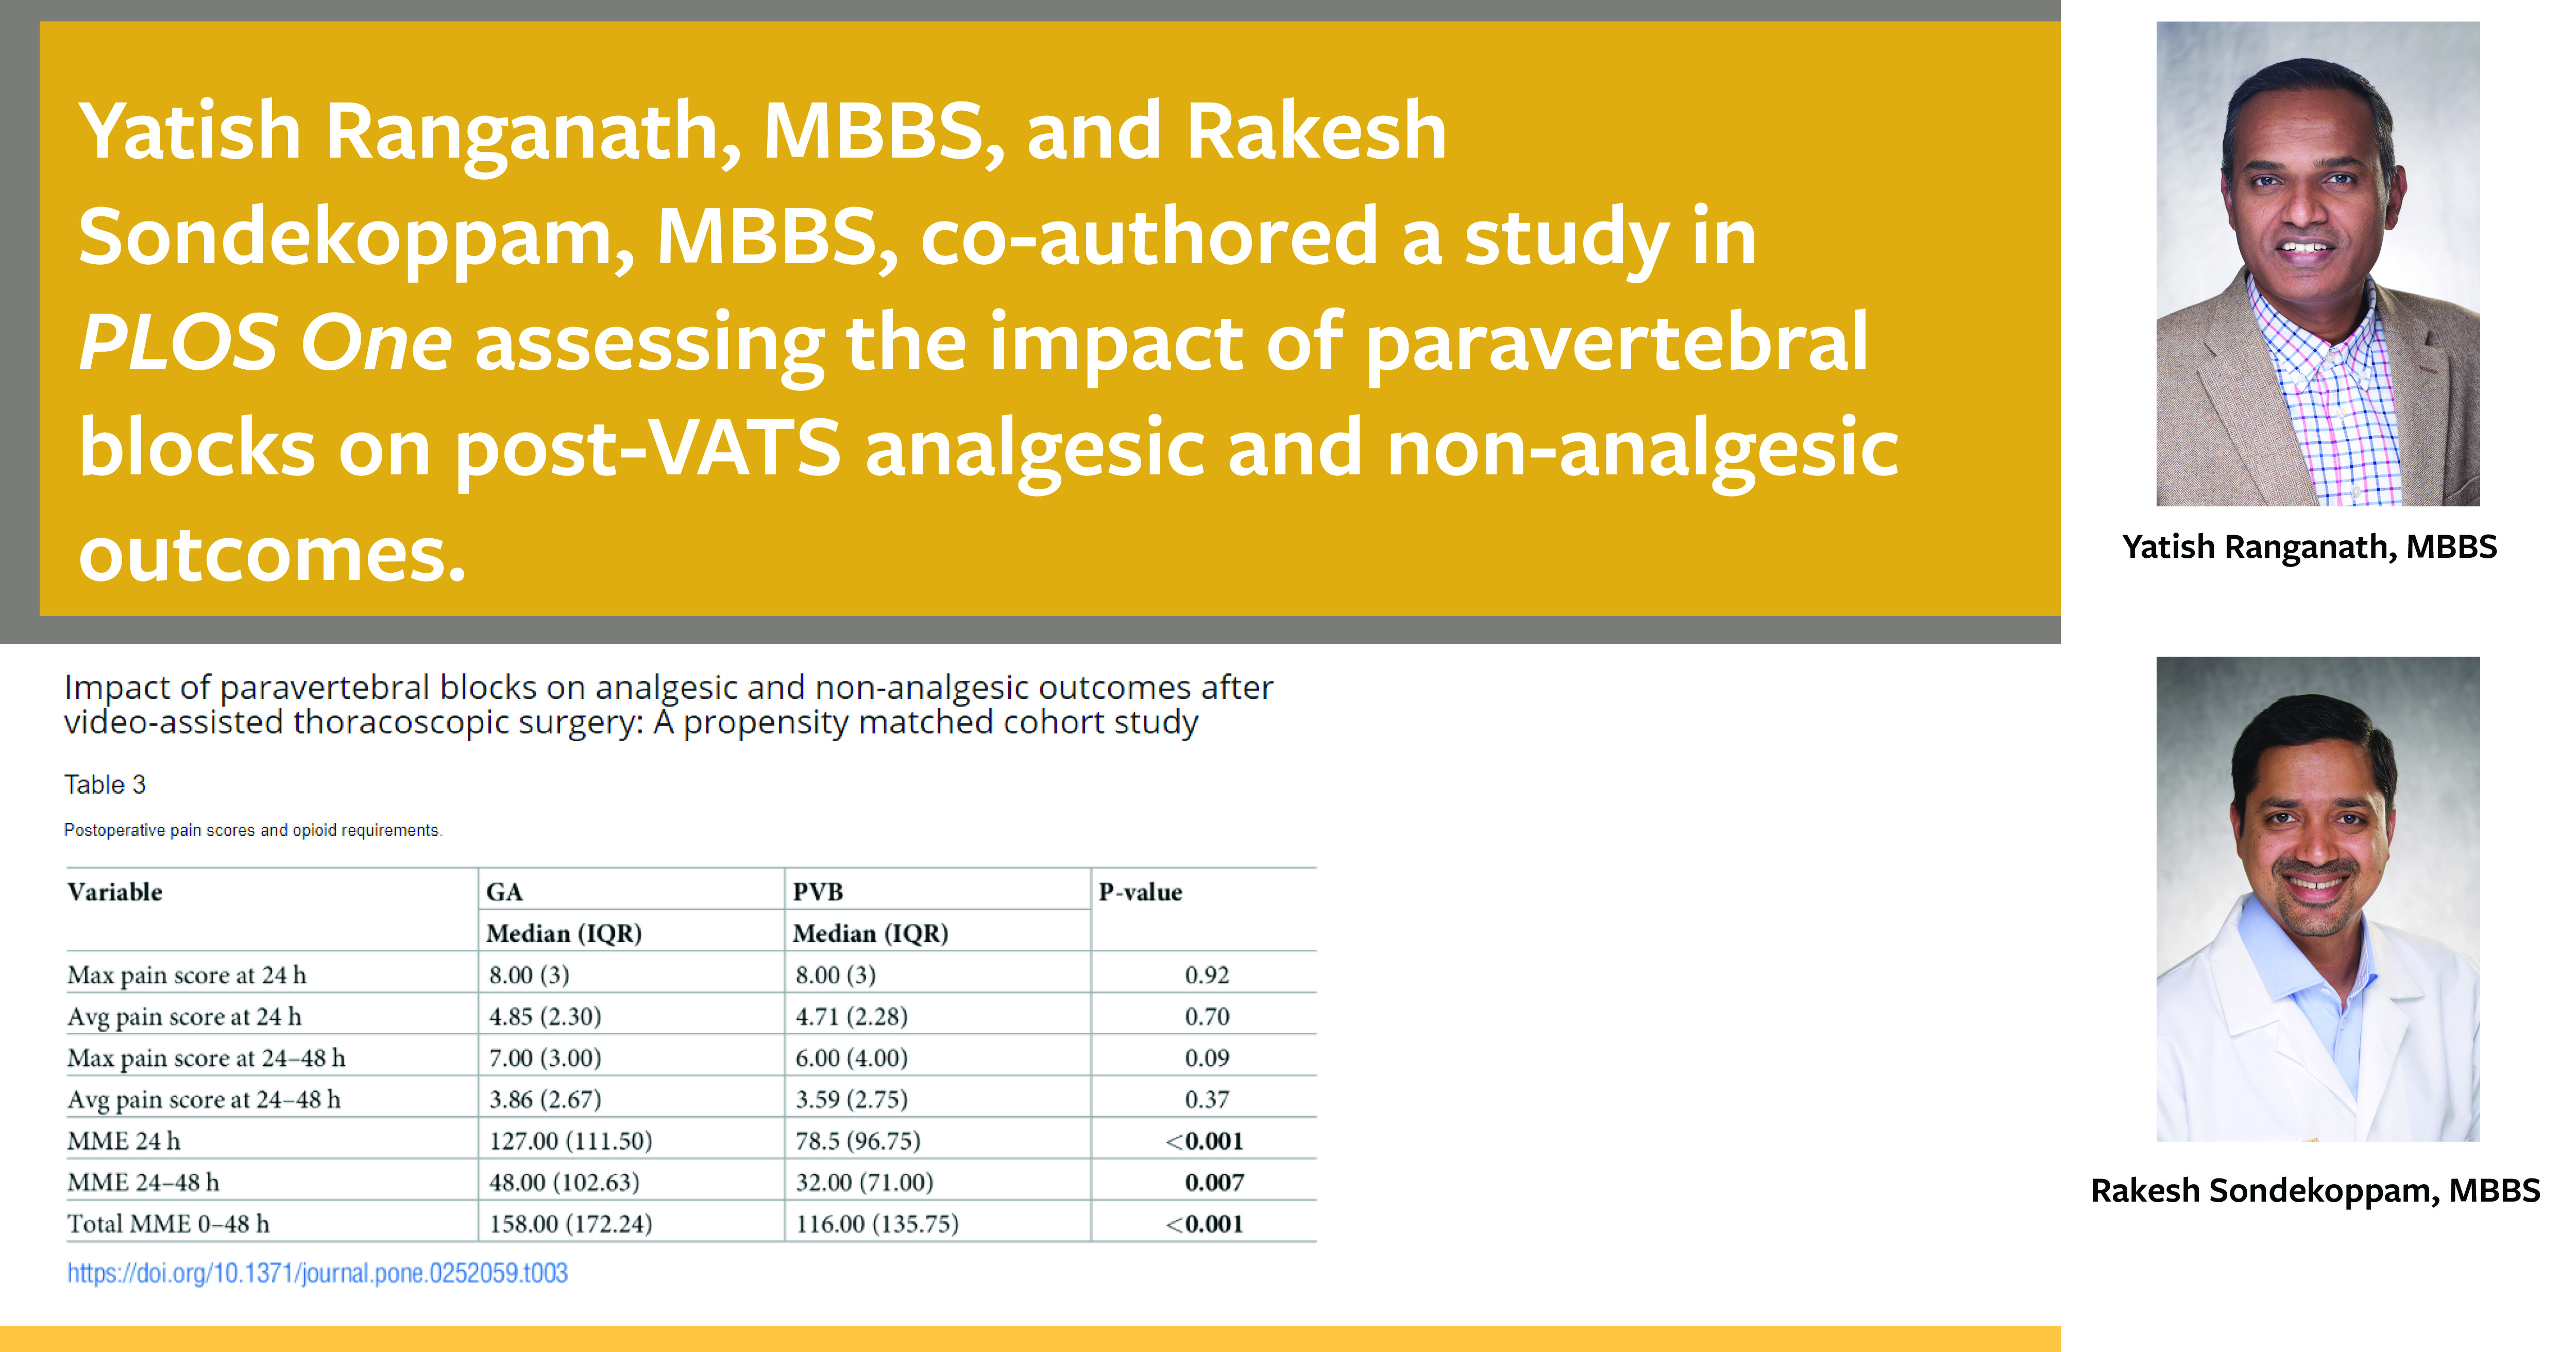 Drs. Ranganath and Sondekoppam published an article on the impact of paravertebral blocks on VATS outcomes